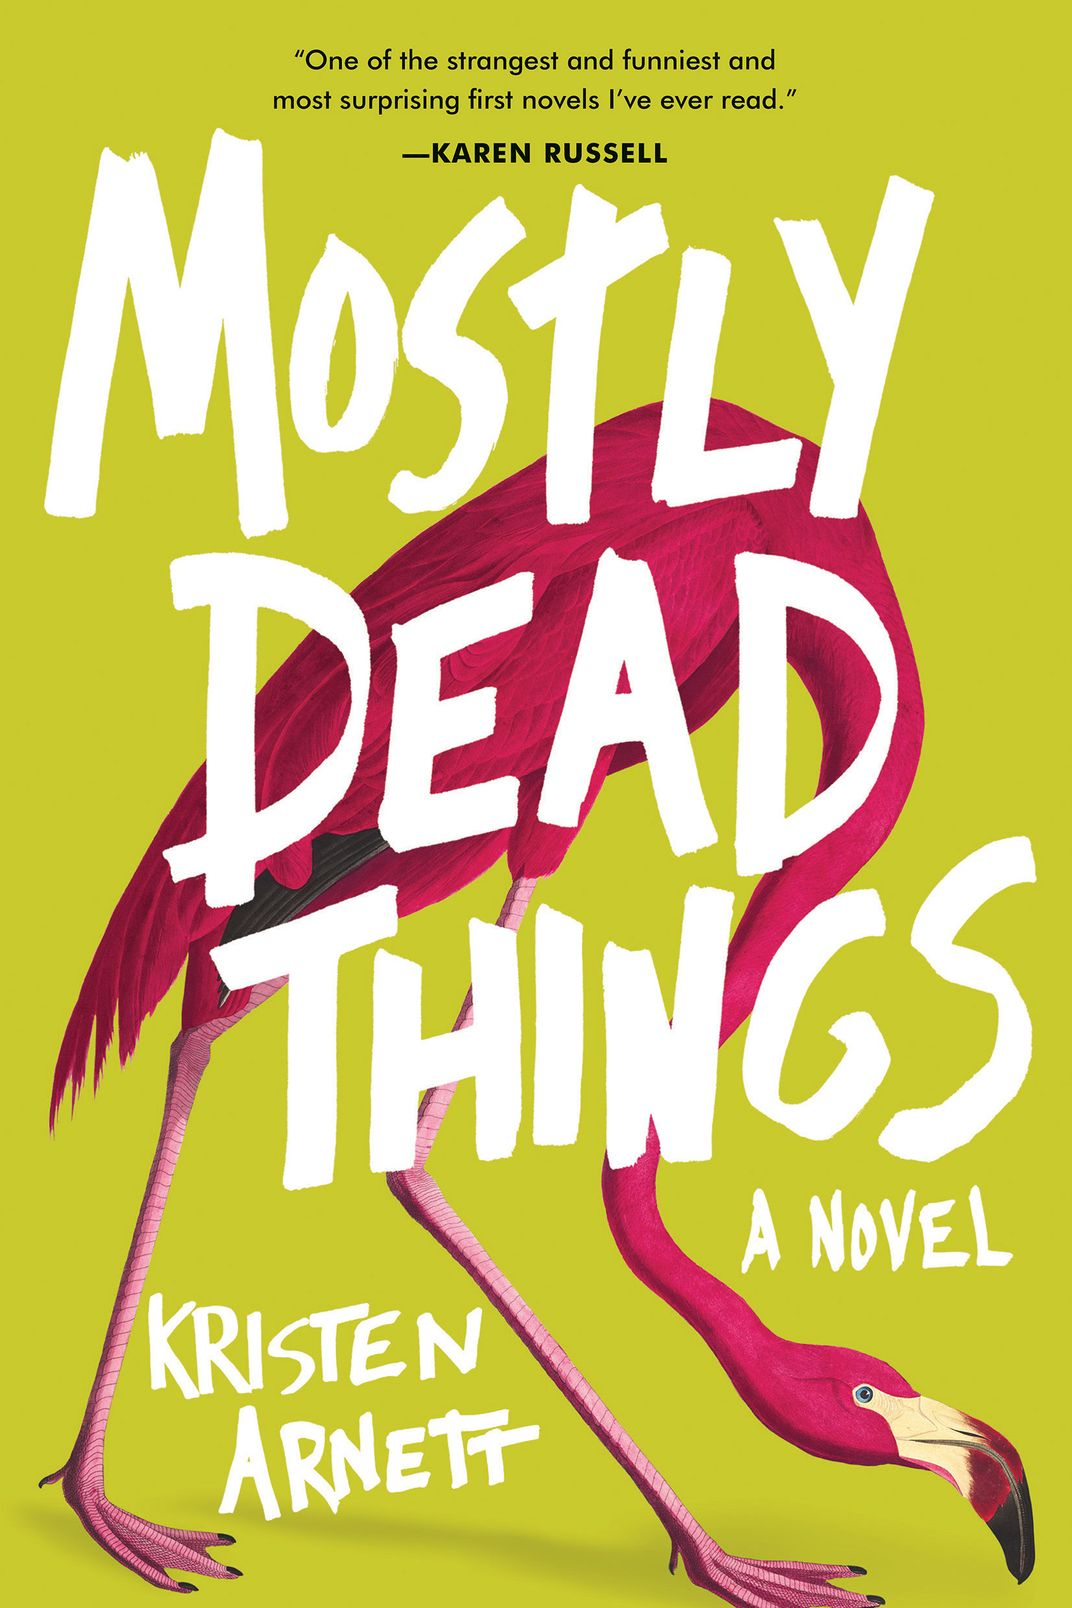 Mostly Dead Things, by Kristen Arnett (Tin House, June 4)